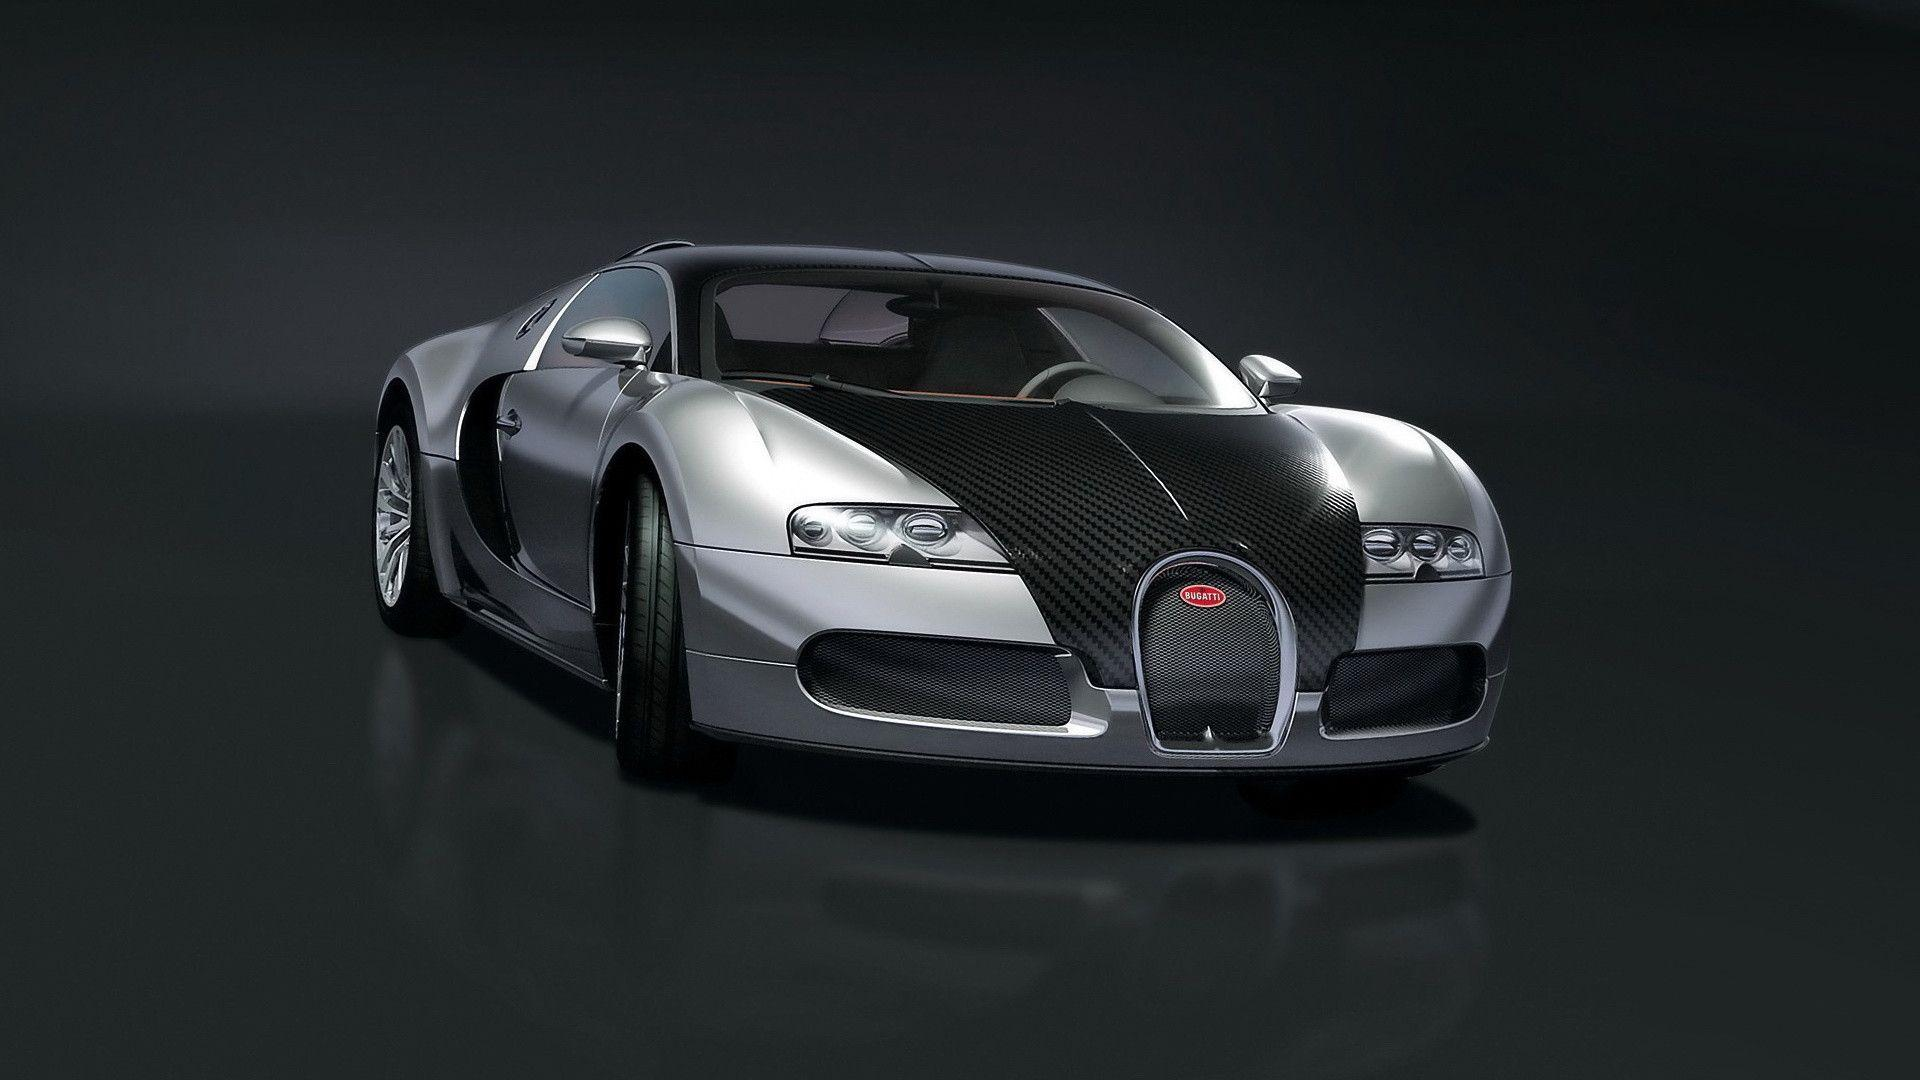 Bugatti Veyron Wallpapers Cars 2015 Wallpapers HD Download